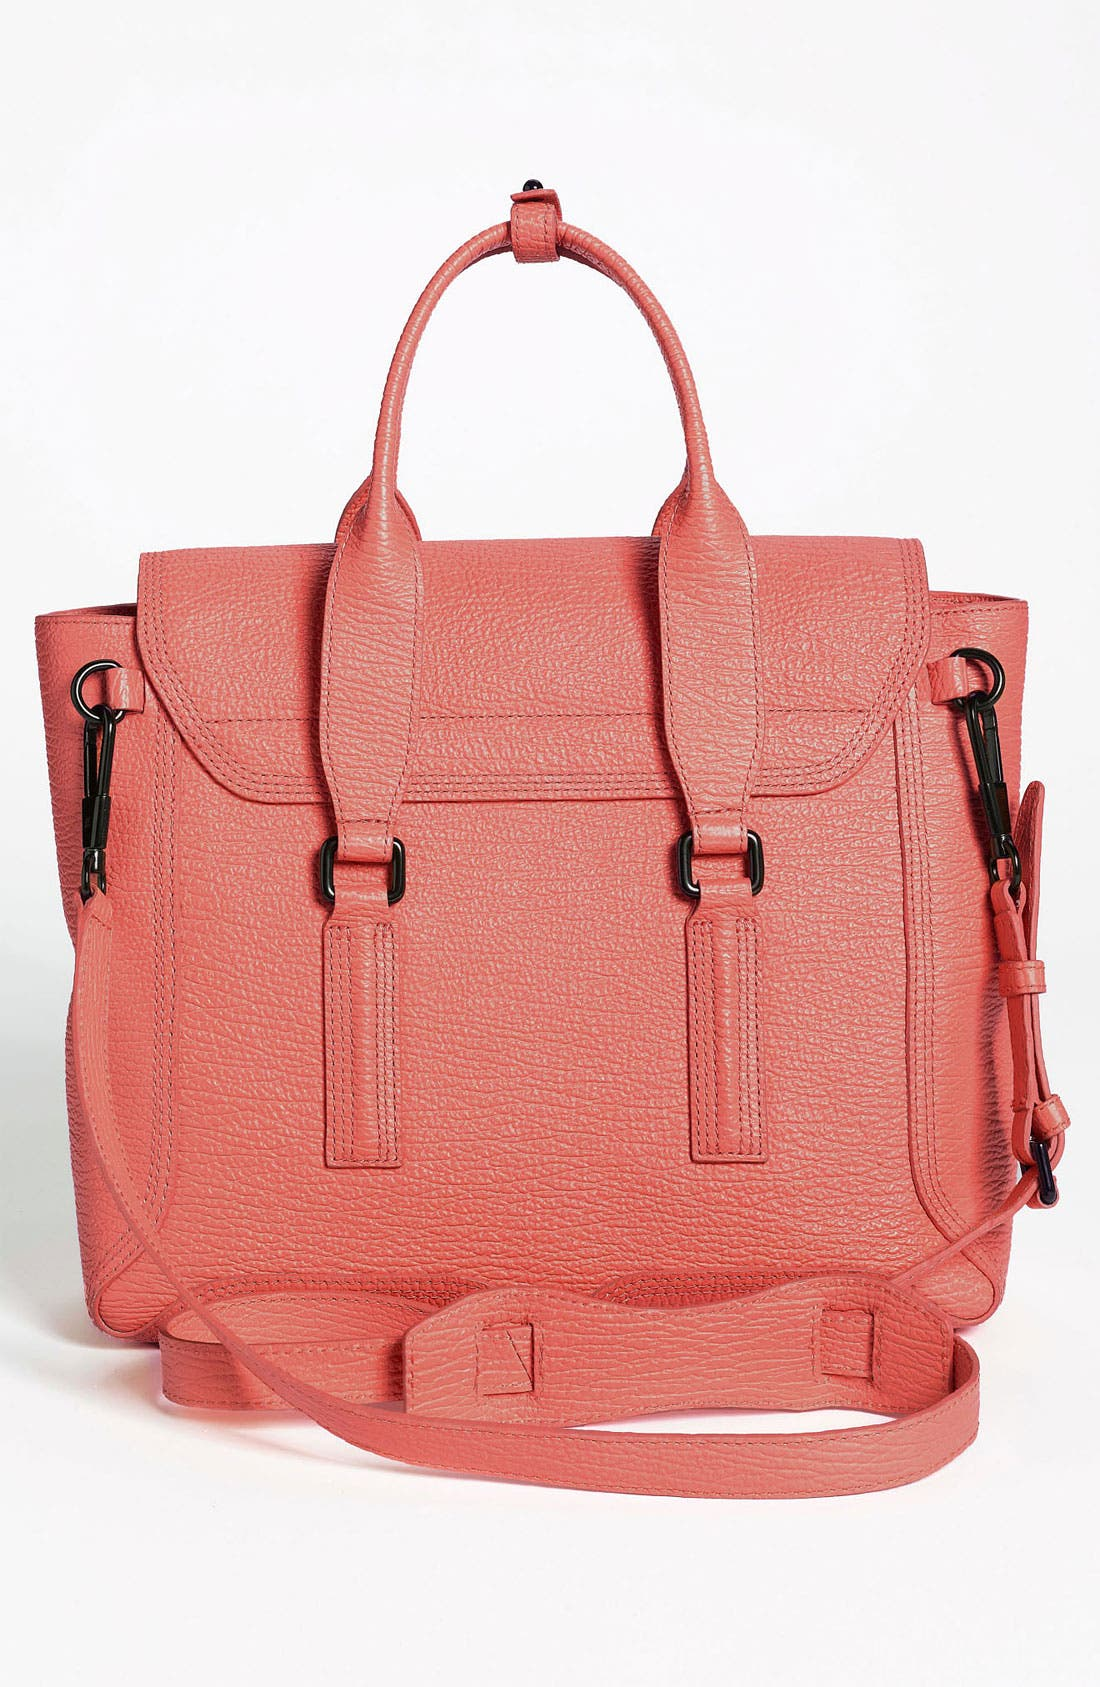 Alternate Image 3  - 3.1 Phillip Lim 'Medium Pashli' Leather Satchel